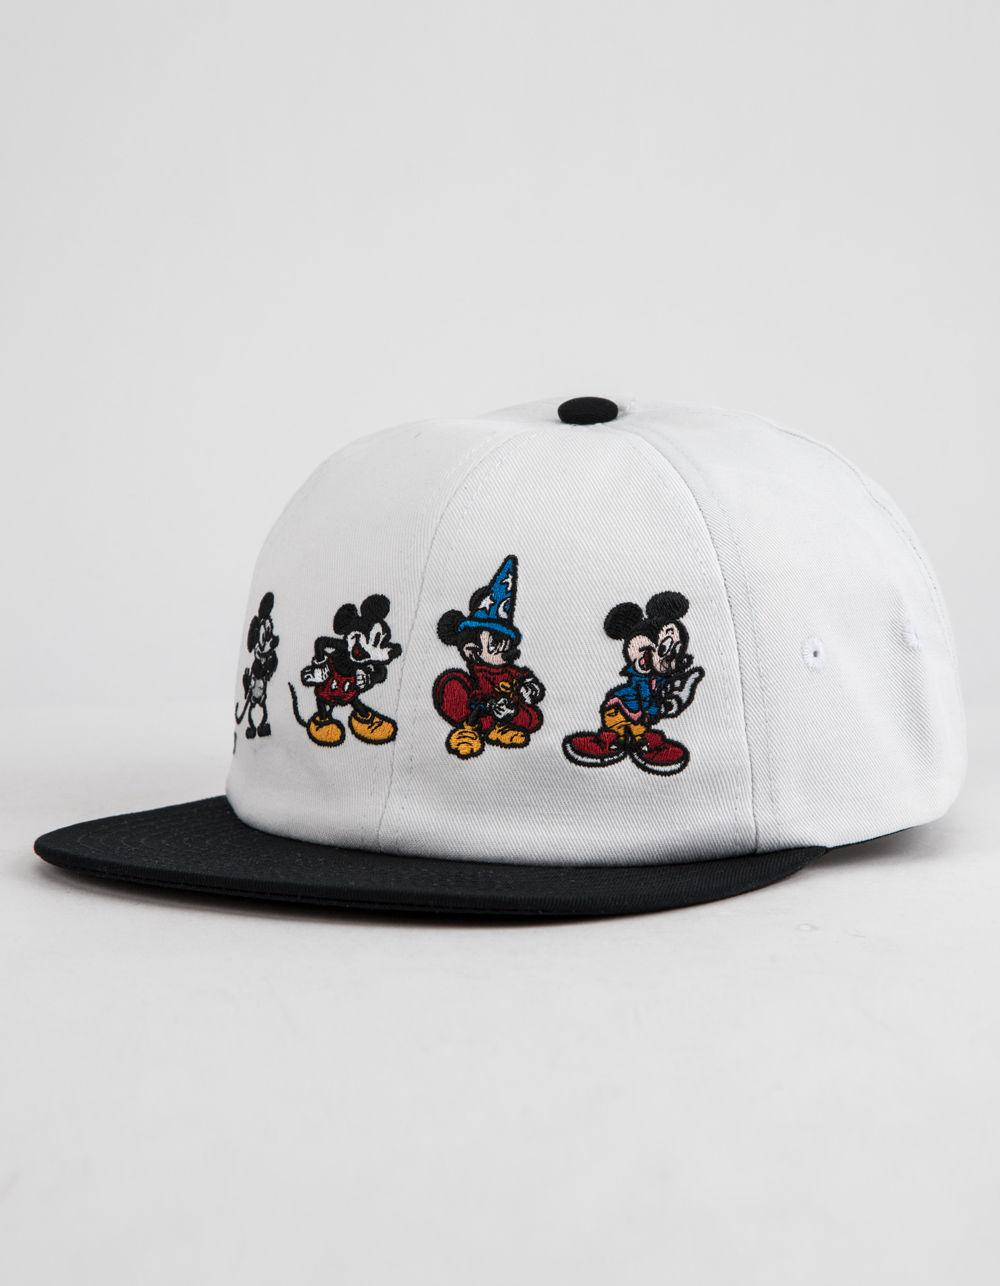 Lyst - Vans Disney X Mickey Through The Ages Mens Strapback Hat in ... cb3338ed0